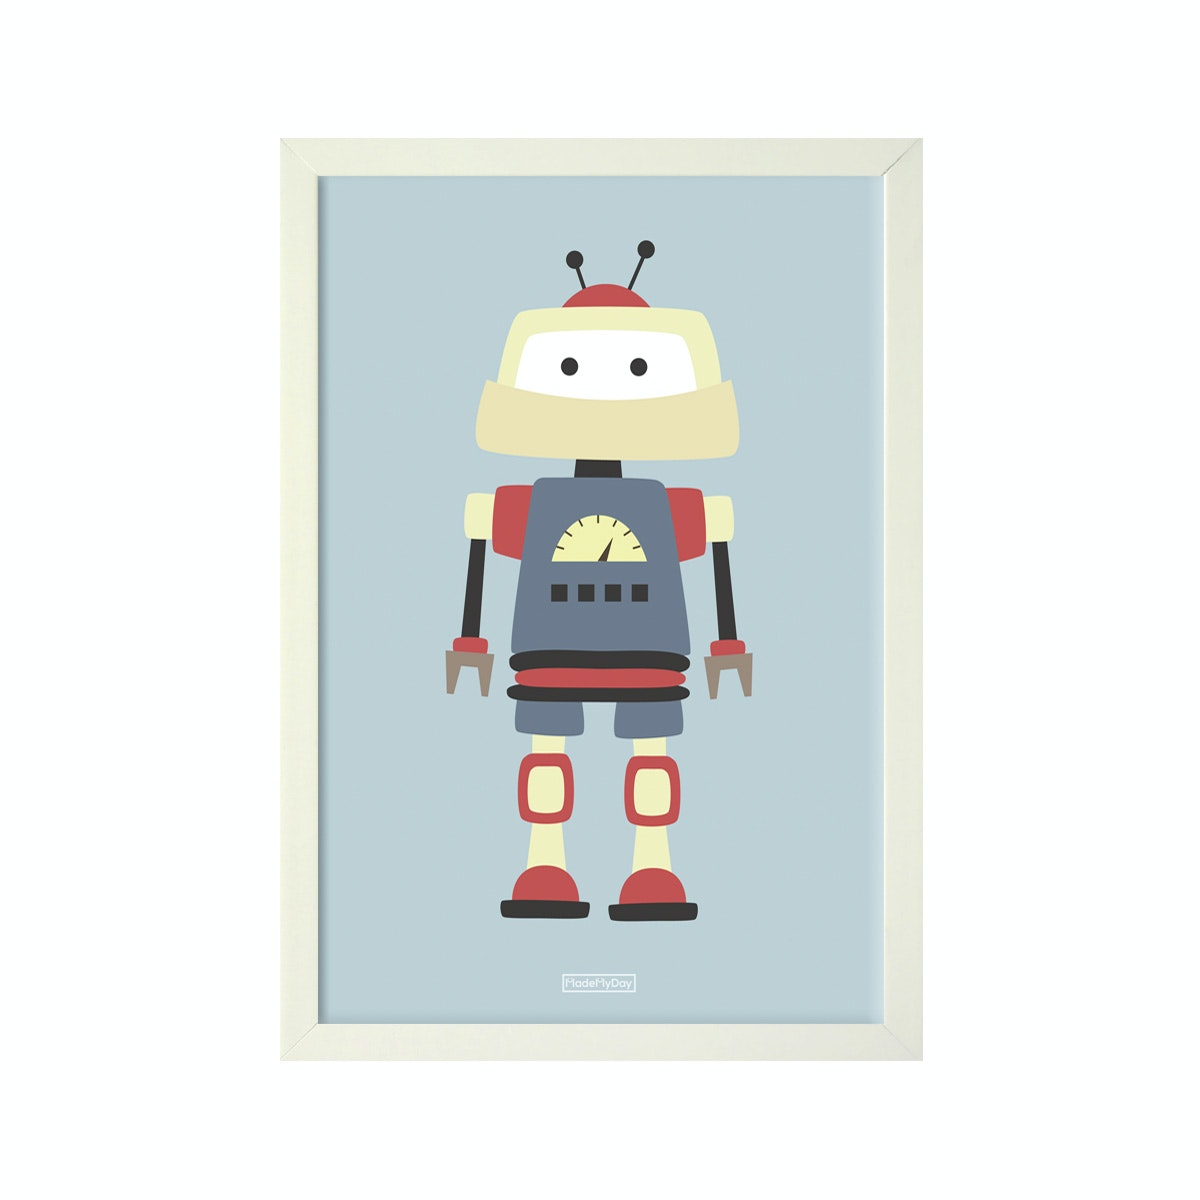 MadeMyDay Chip The Robot (20X30cm)